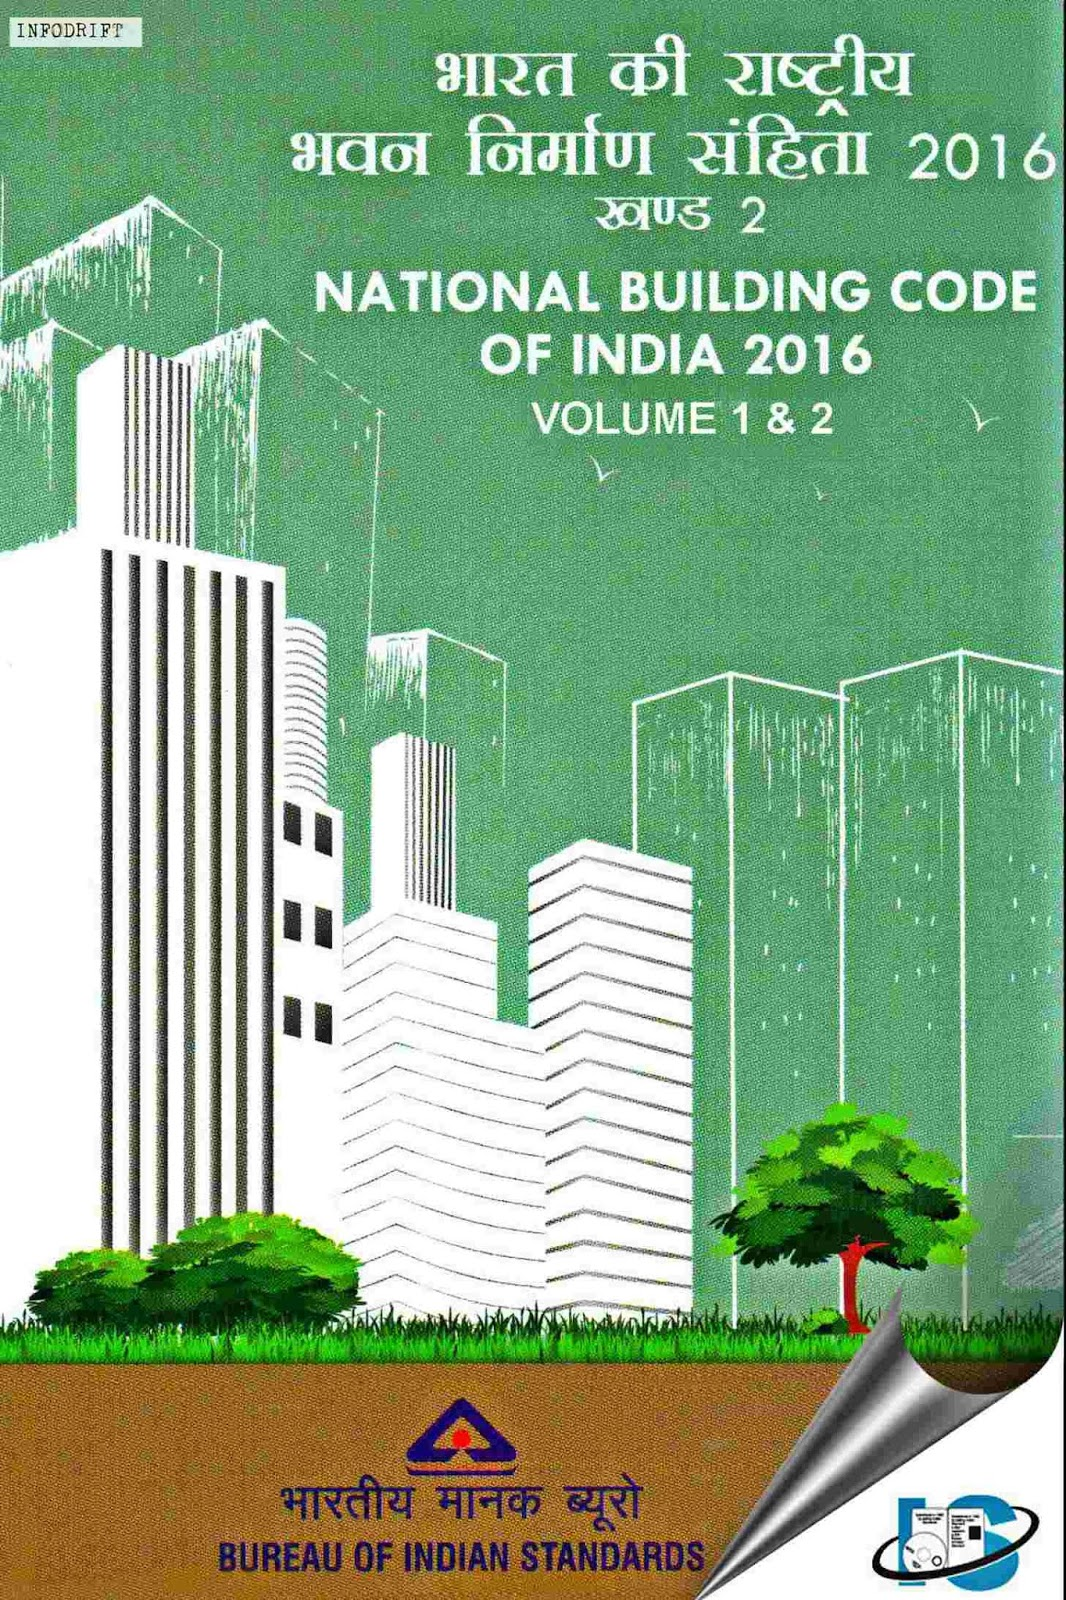 The National Building Code